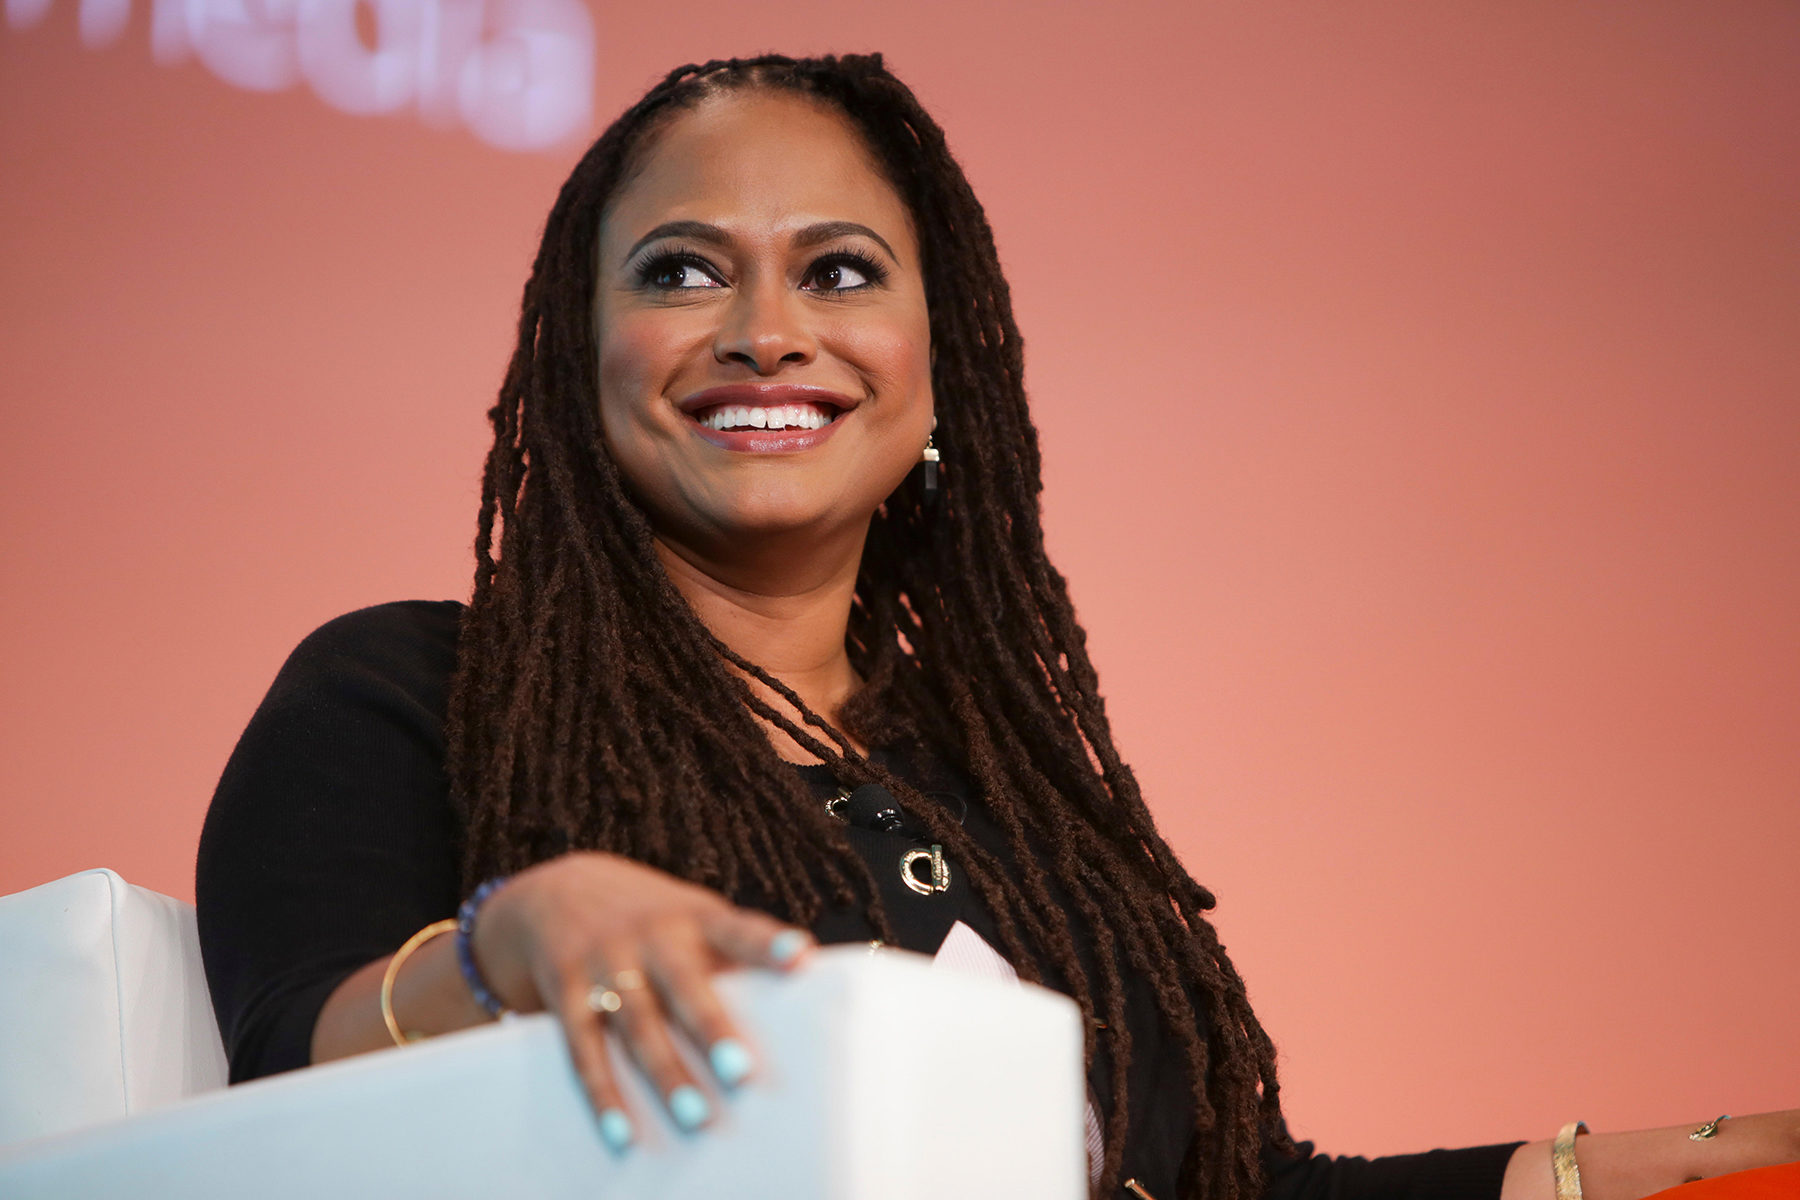 Ava DuVernay Secures an Estimated $100 Million Dollar Bag with Warner Bros. TV